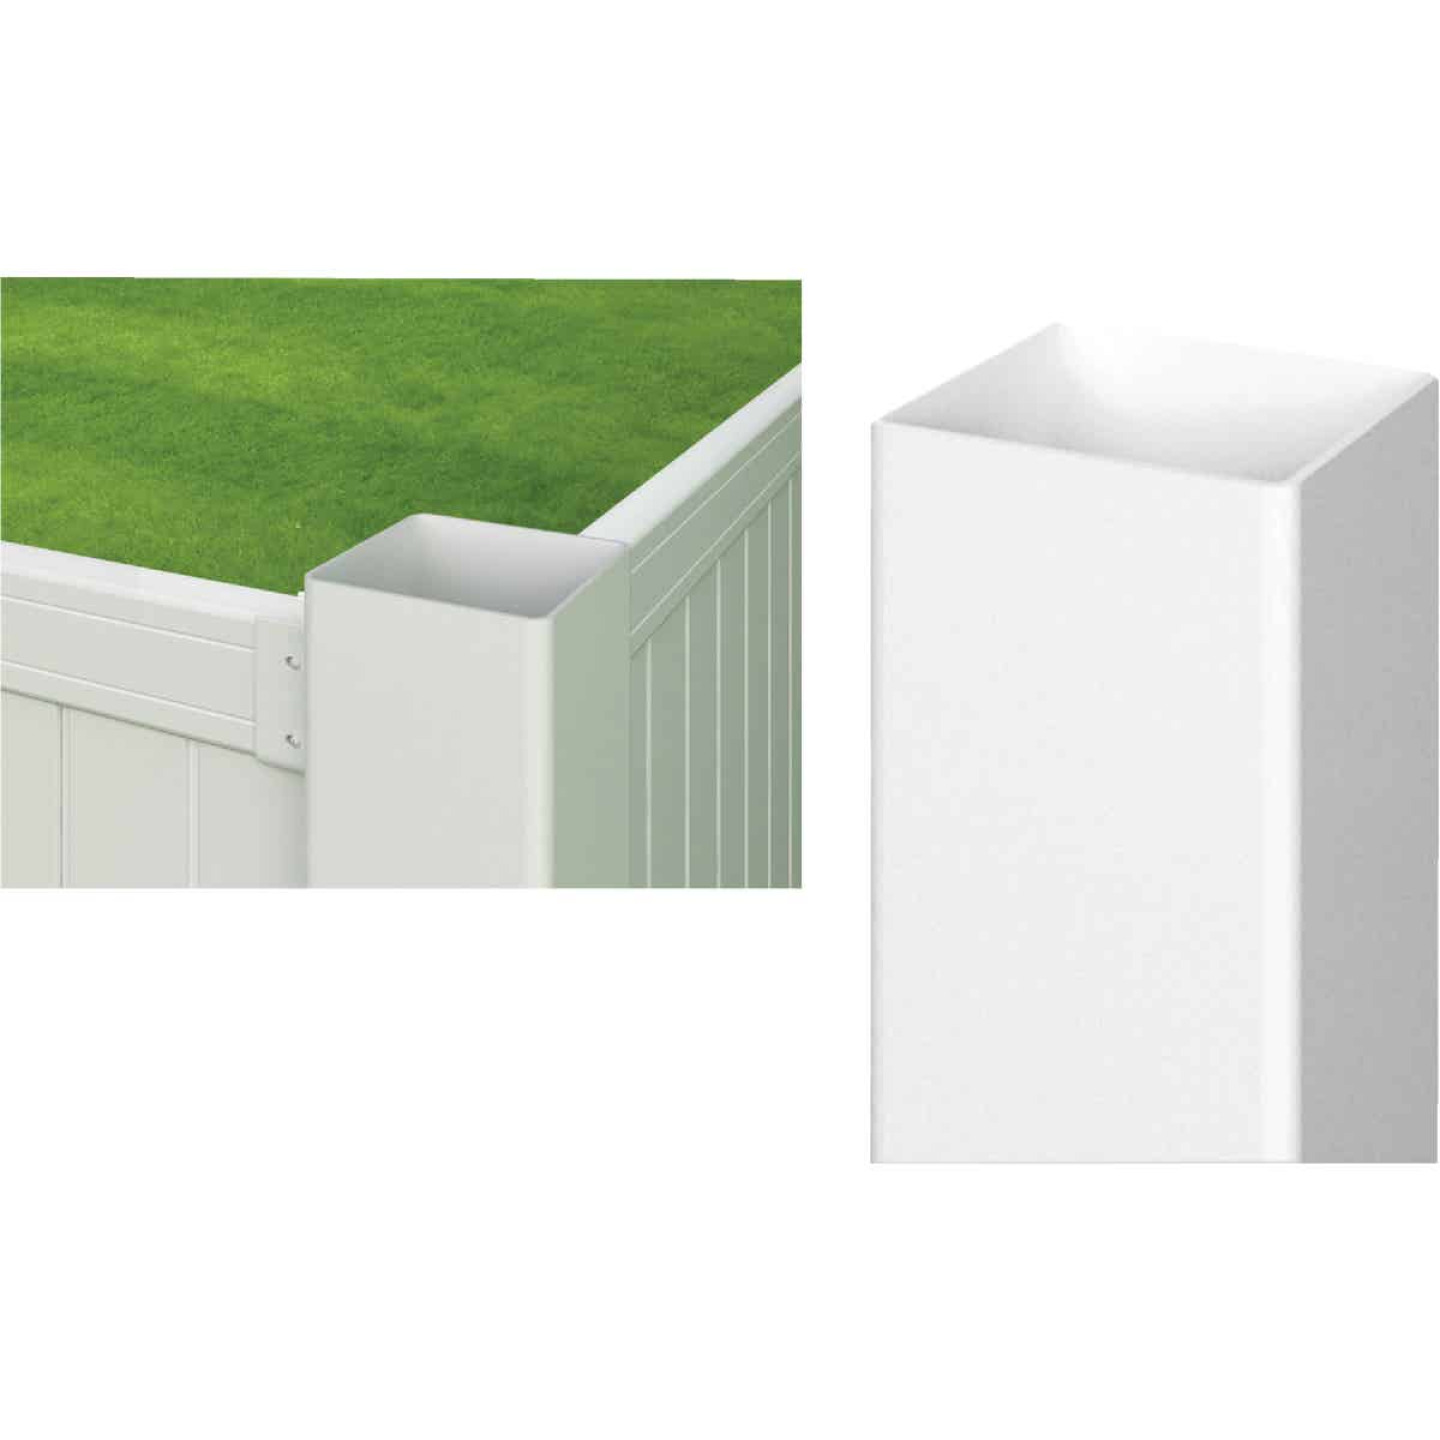 Outdoor Essentials 4 In. x 4 In. x 72 In. White Blank Vinyl Post Image 1